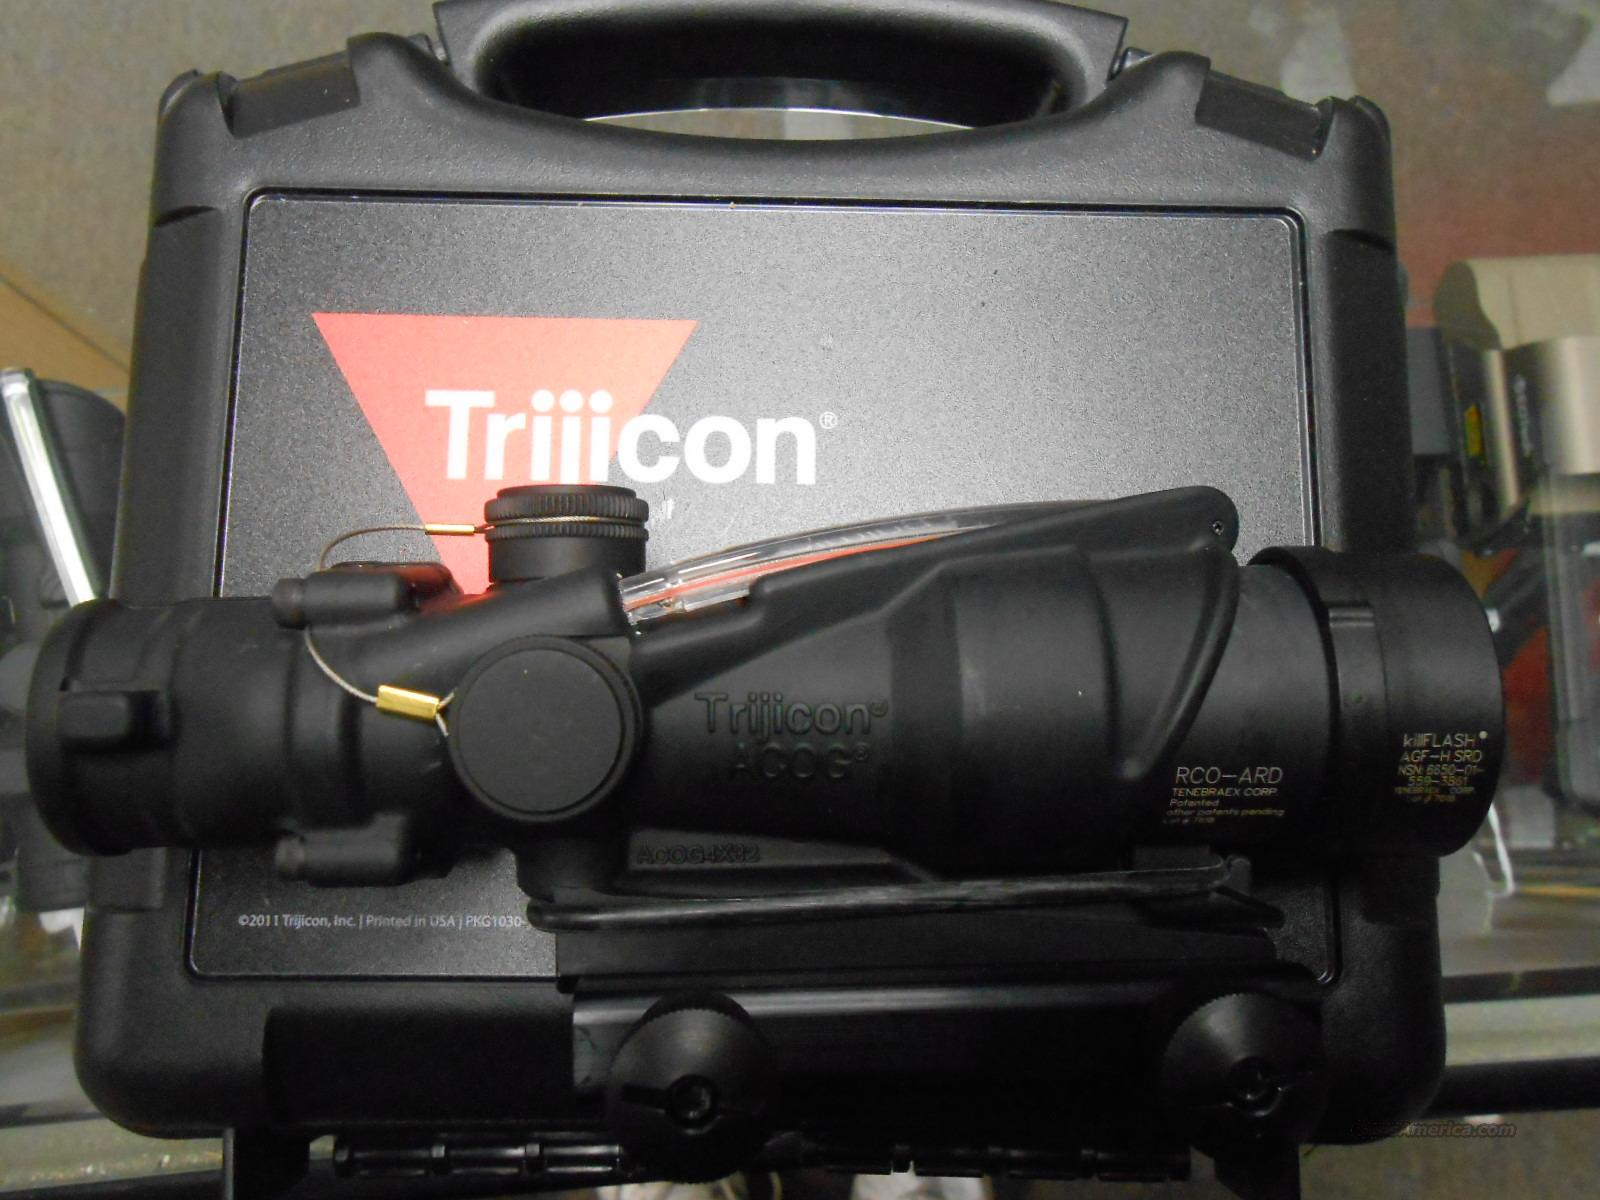 Trijicon ACOG TA31RCO-A4CP 4x32 5.56  Non-Guns > Scopes/Mounts/Rings & Optics > Tactical Scopes > Red Dot